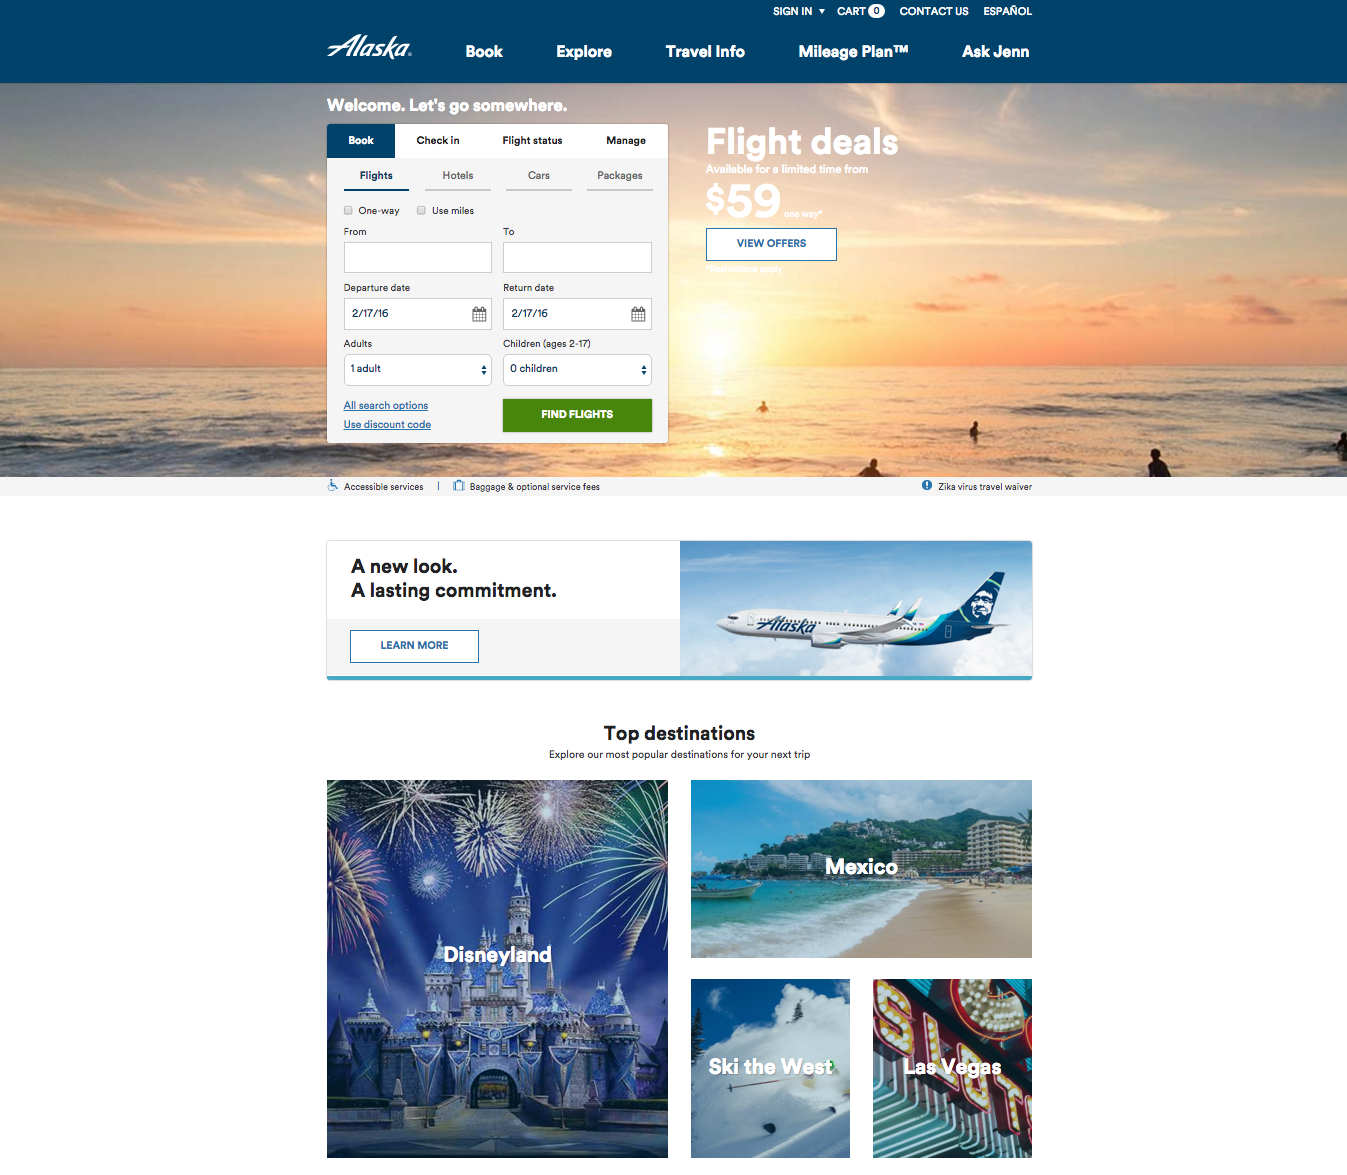 Top 207 Complaints And Reviews About Alaska Airlines